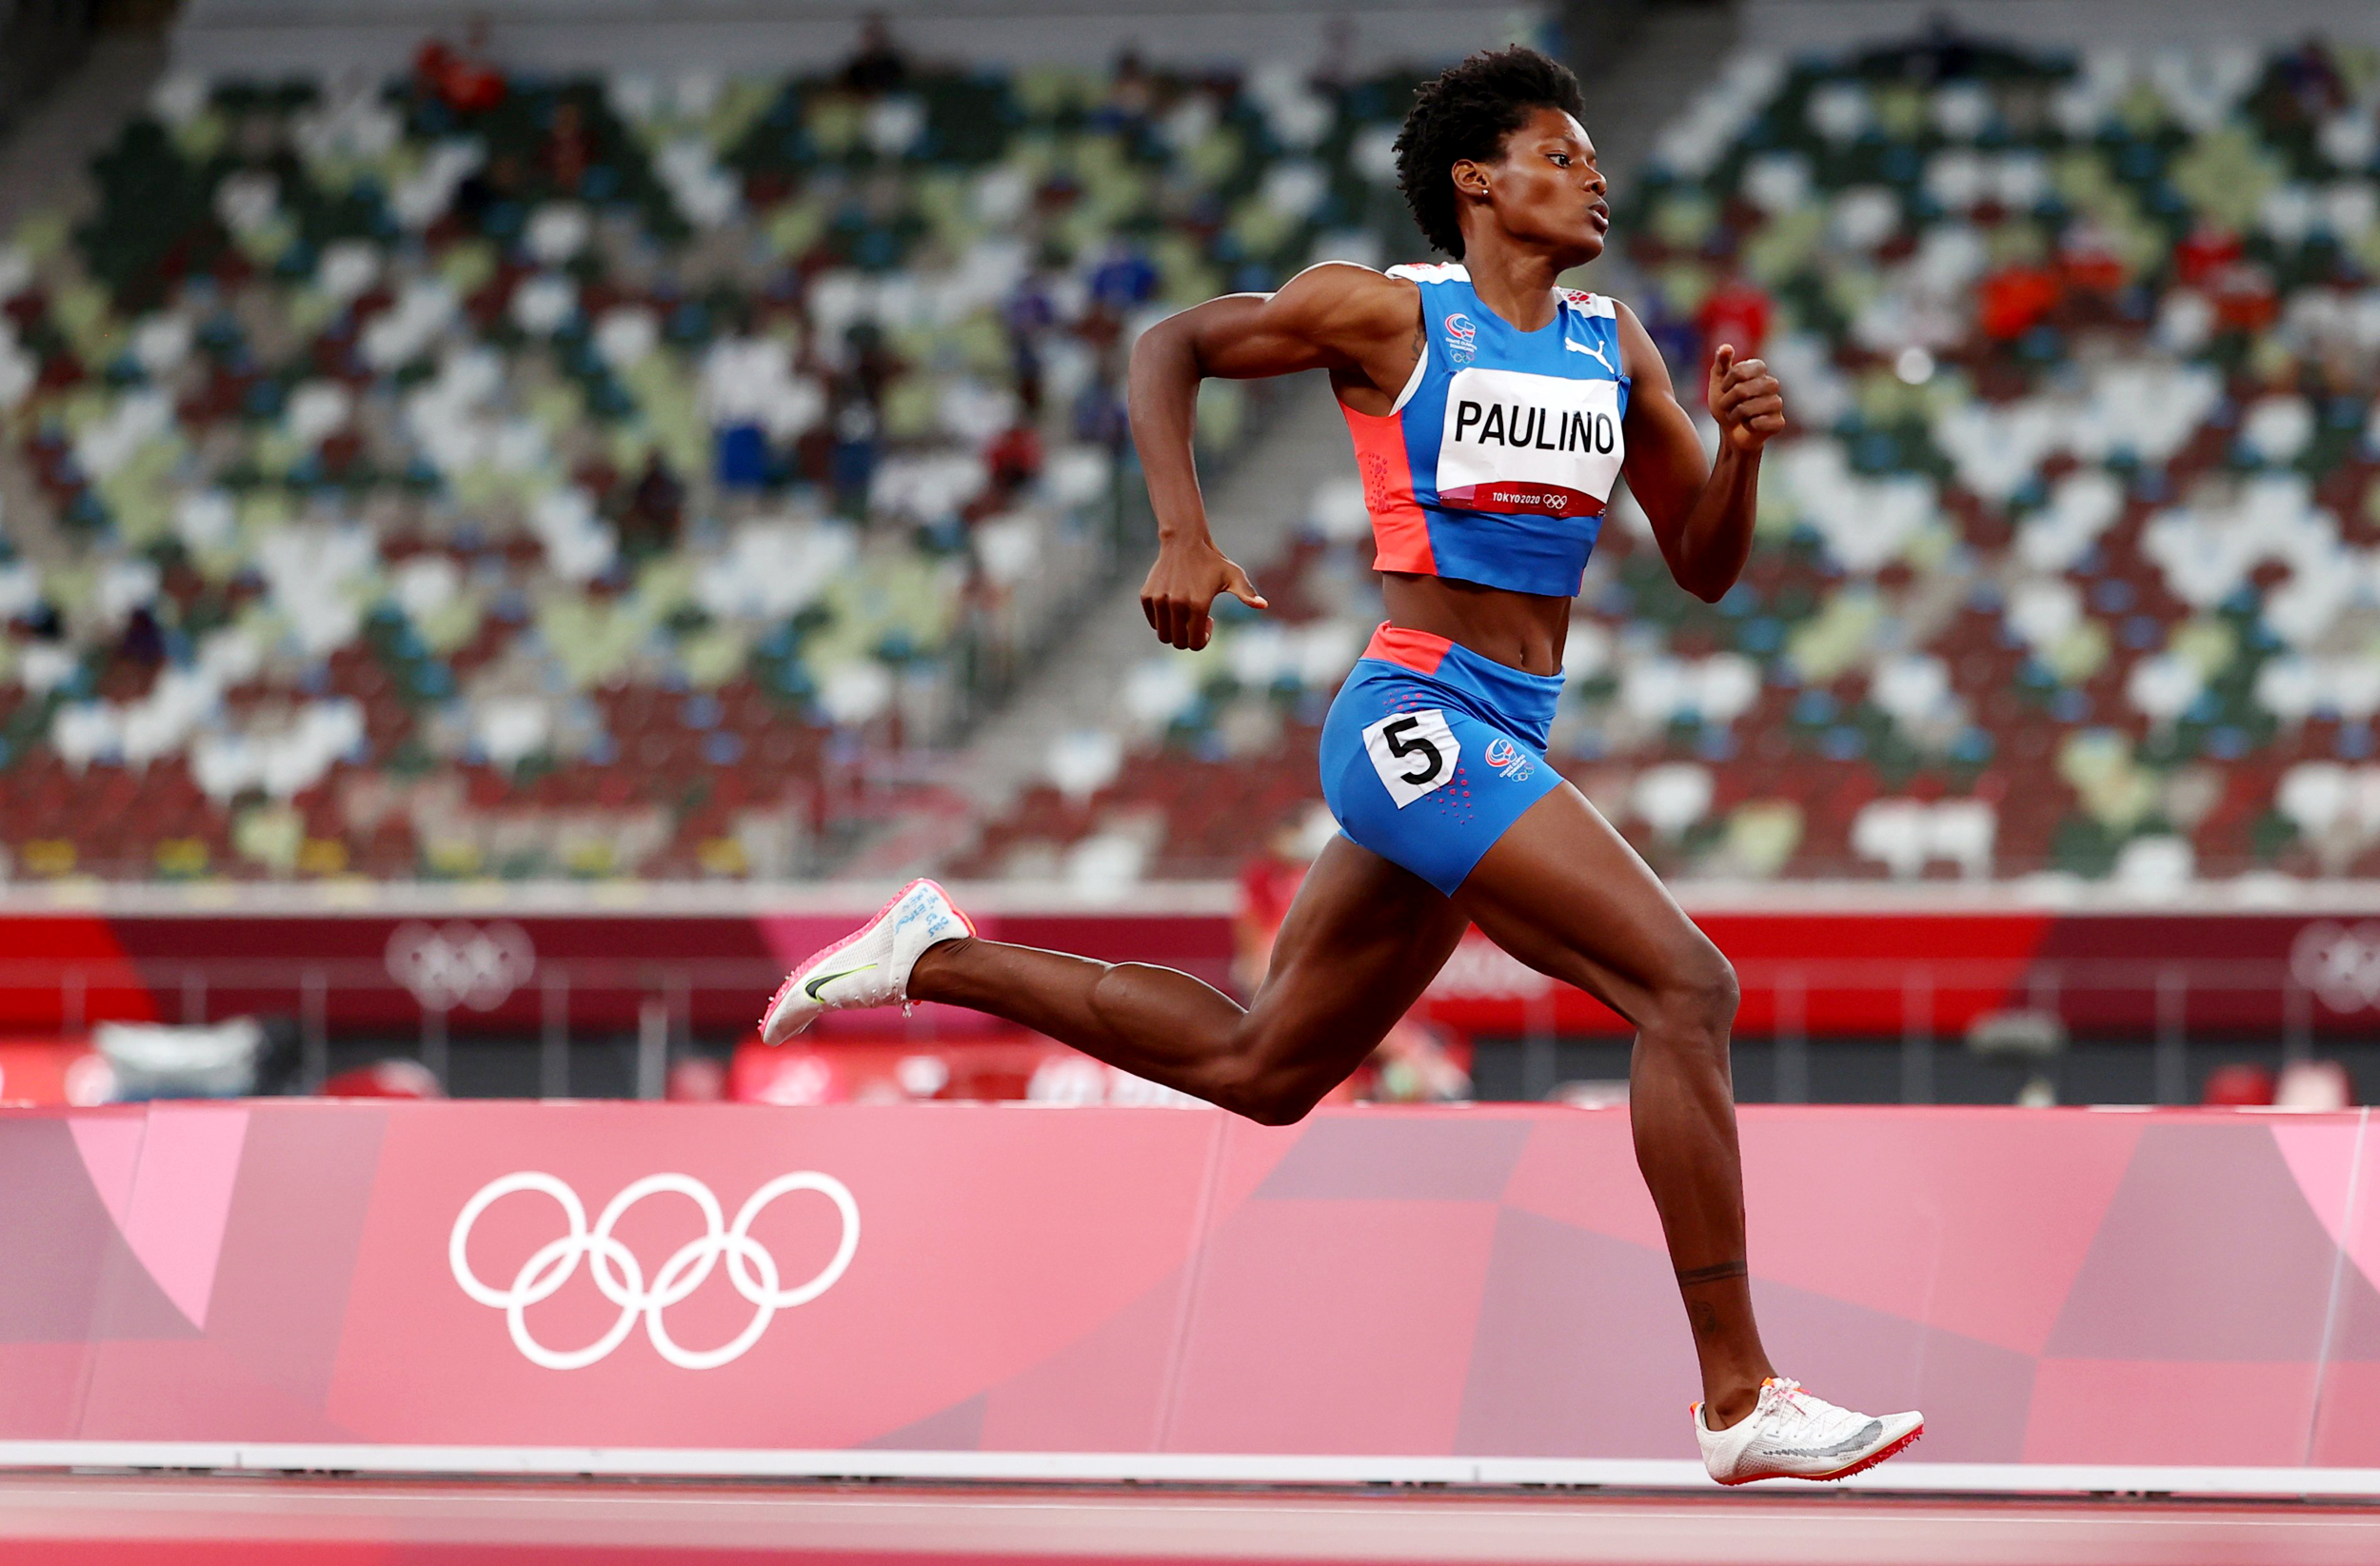 Marileidy Paulino's Olympic run is a historic win for the Dominican Republic